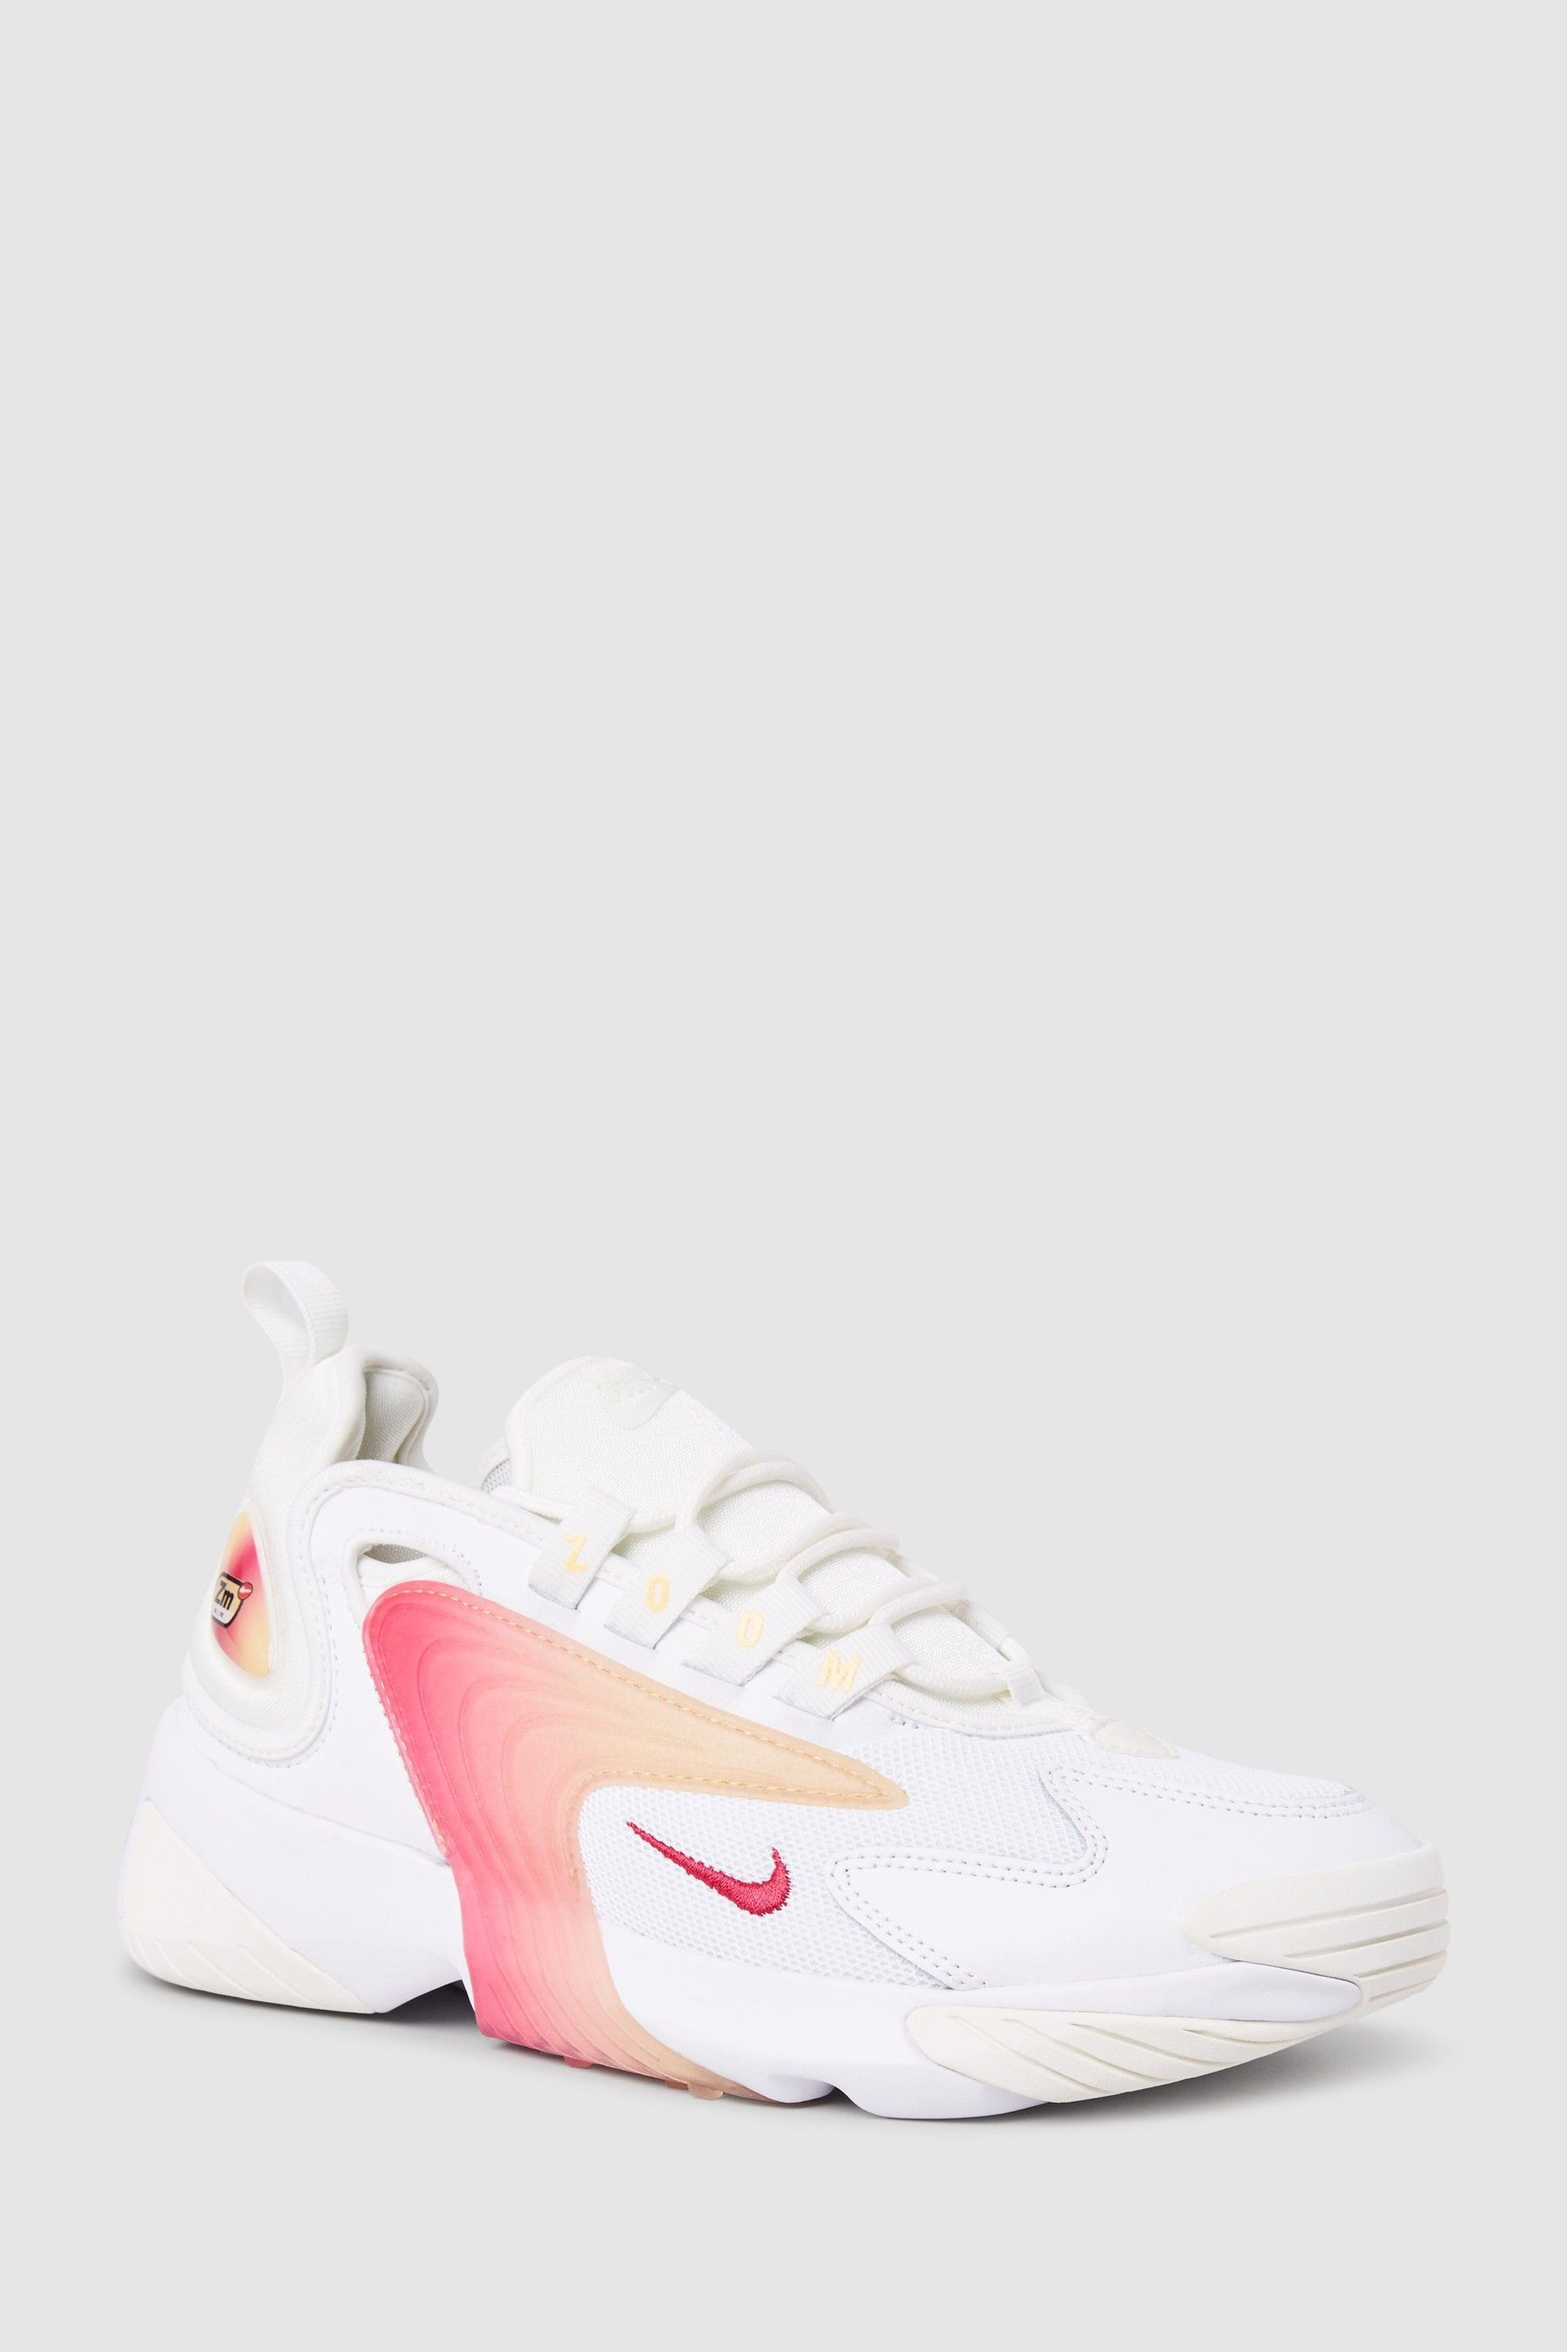 Soldes > chaussure zoom fille > en stock